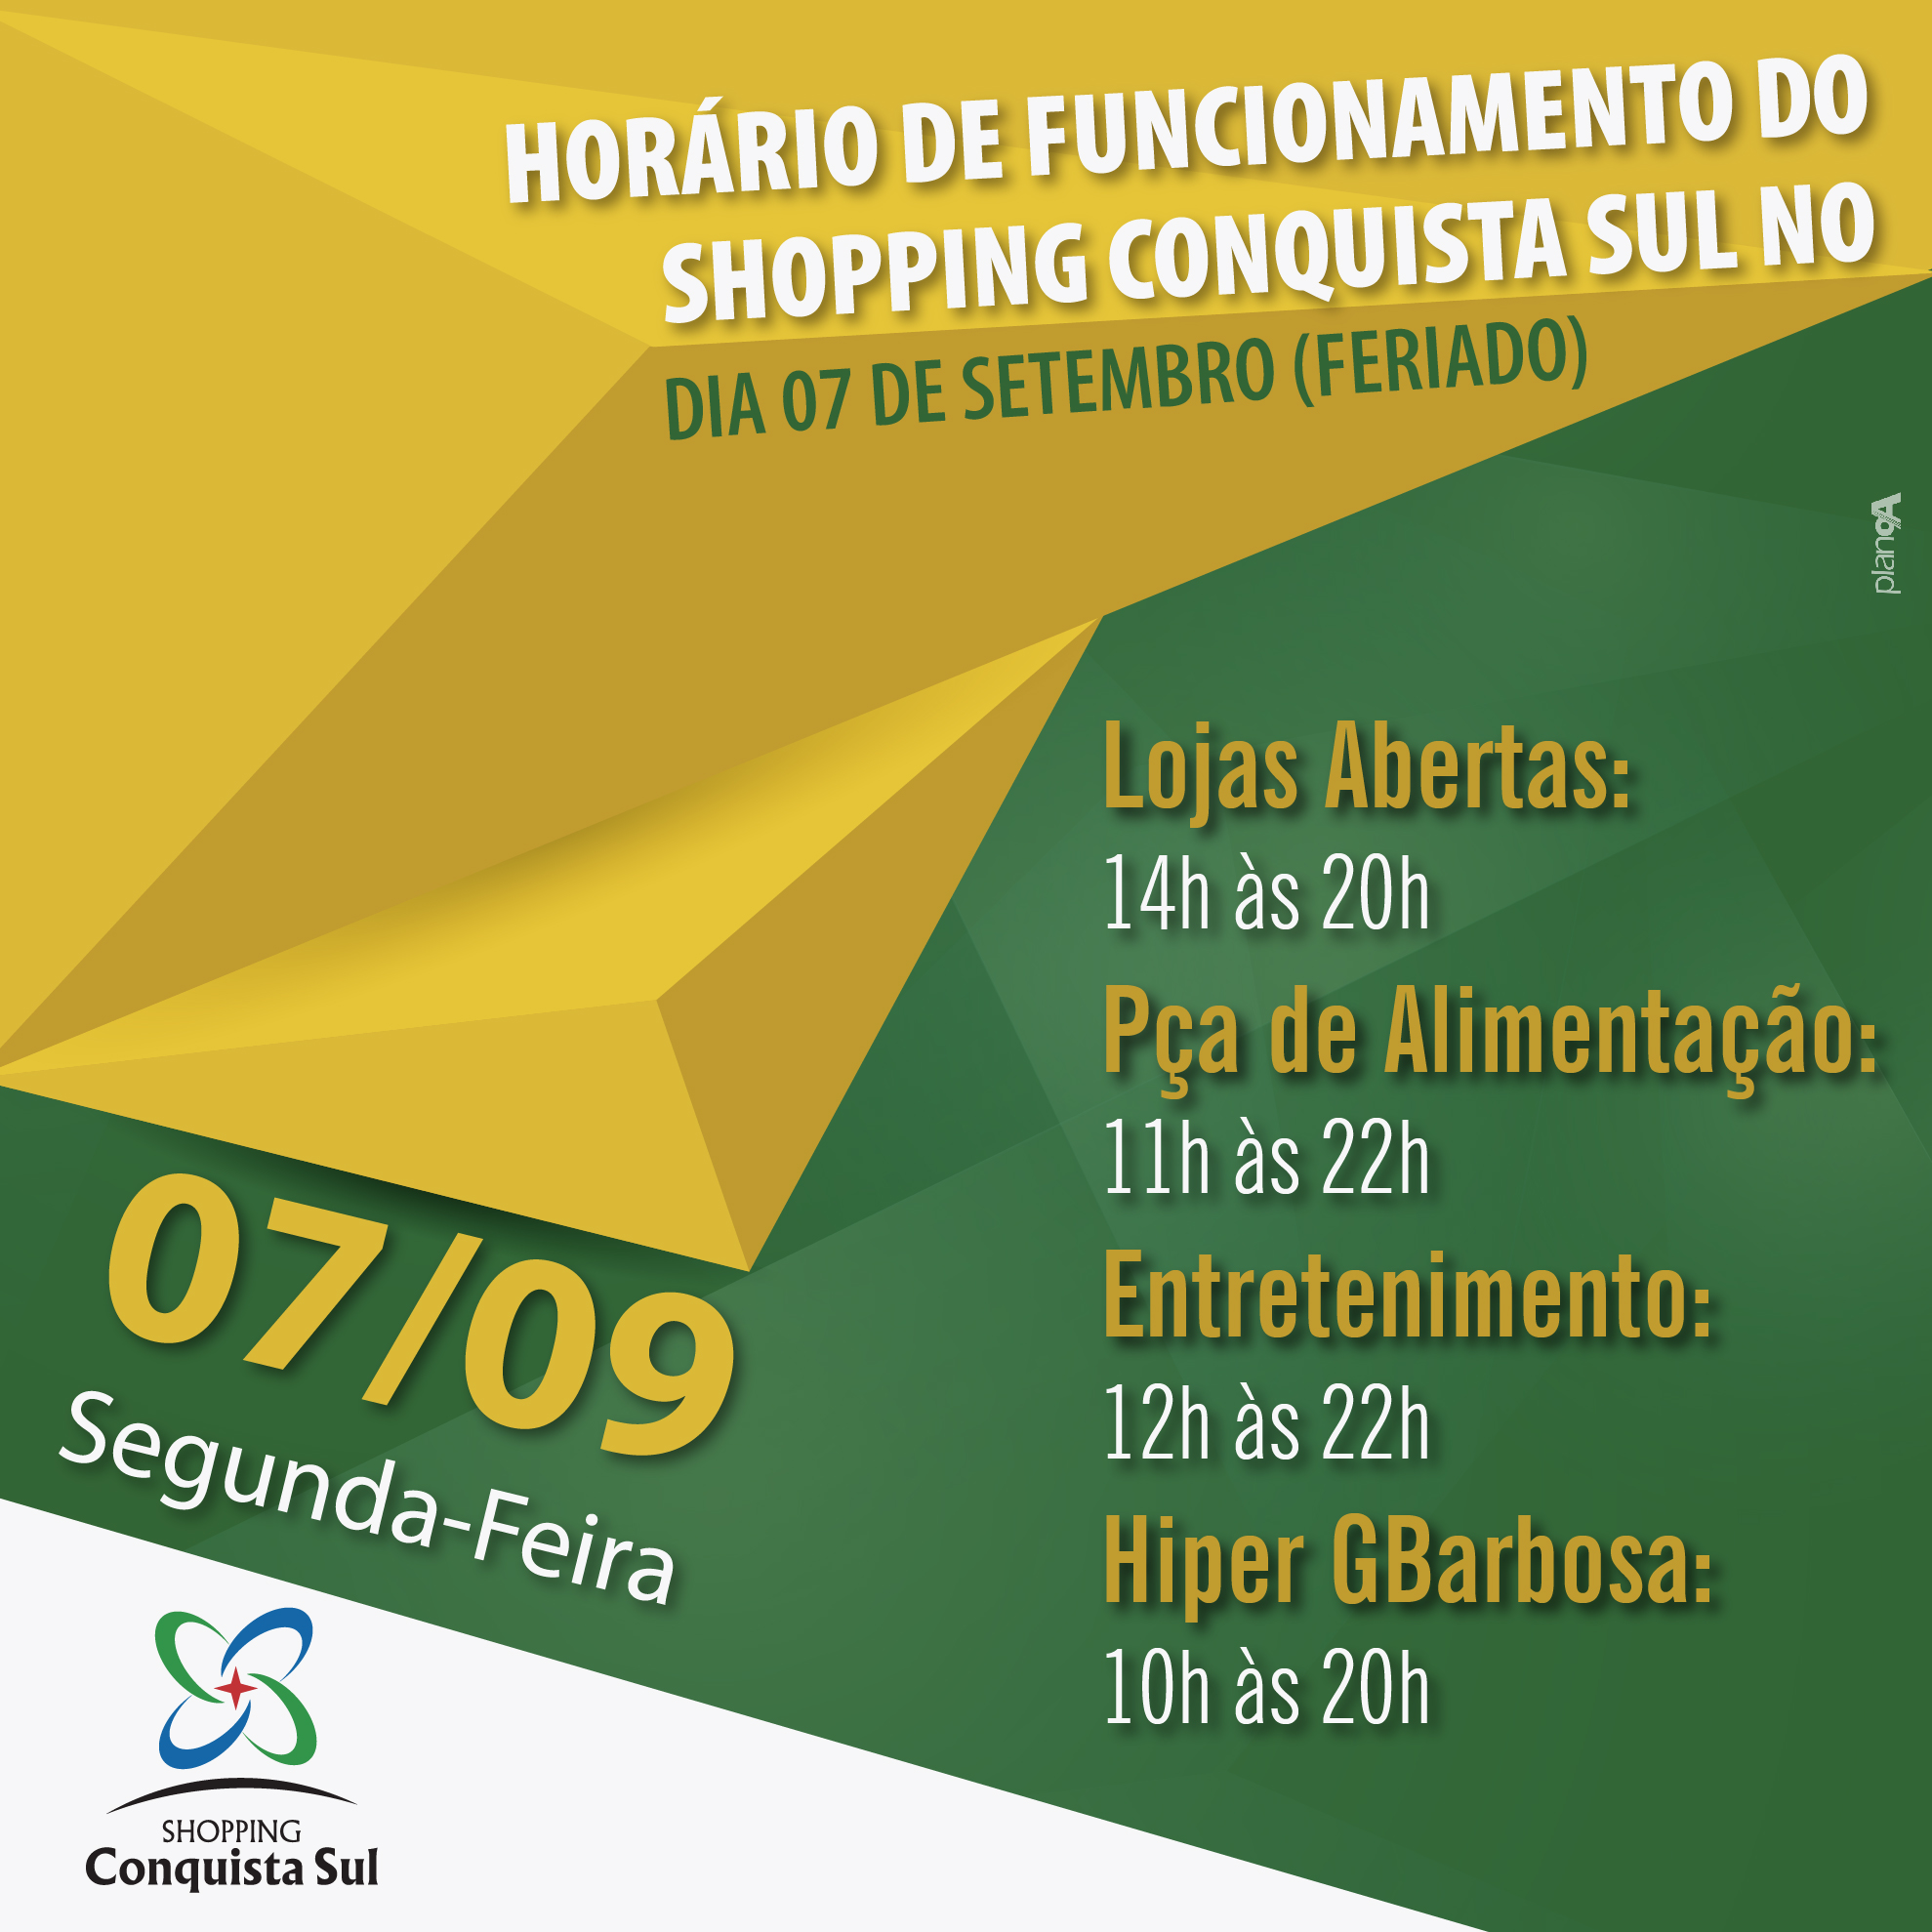 digitais - HorarioFeriado0709- SCS- set2015_post